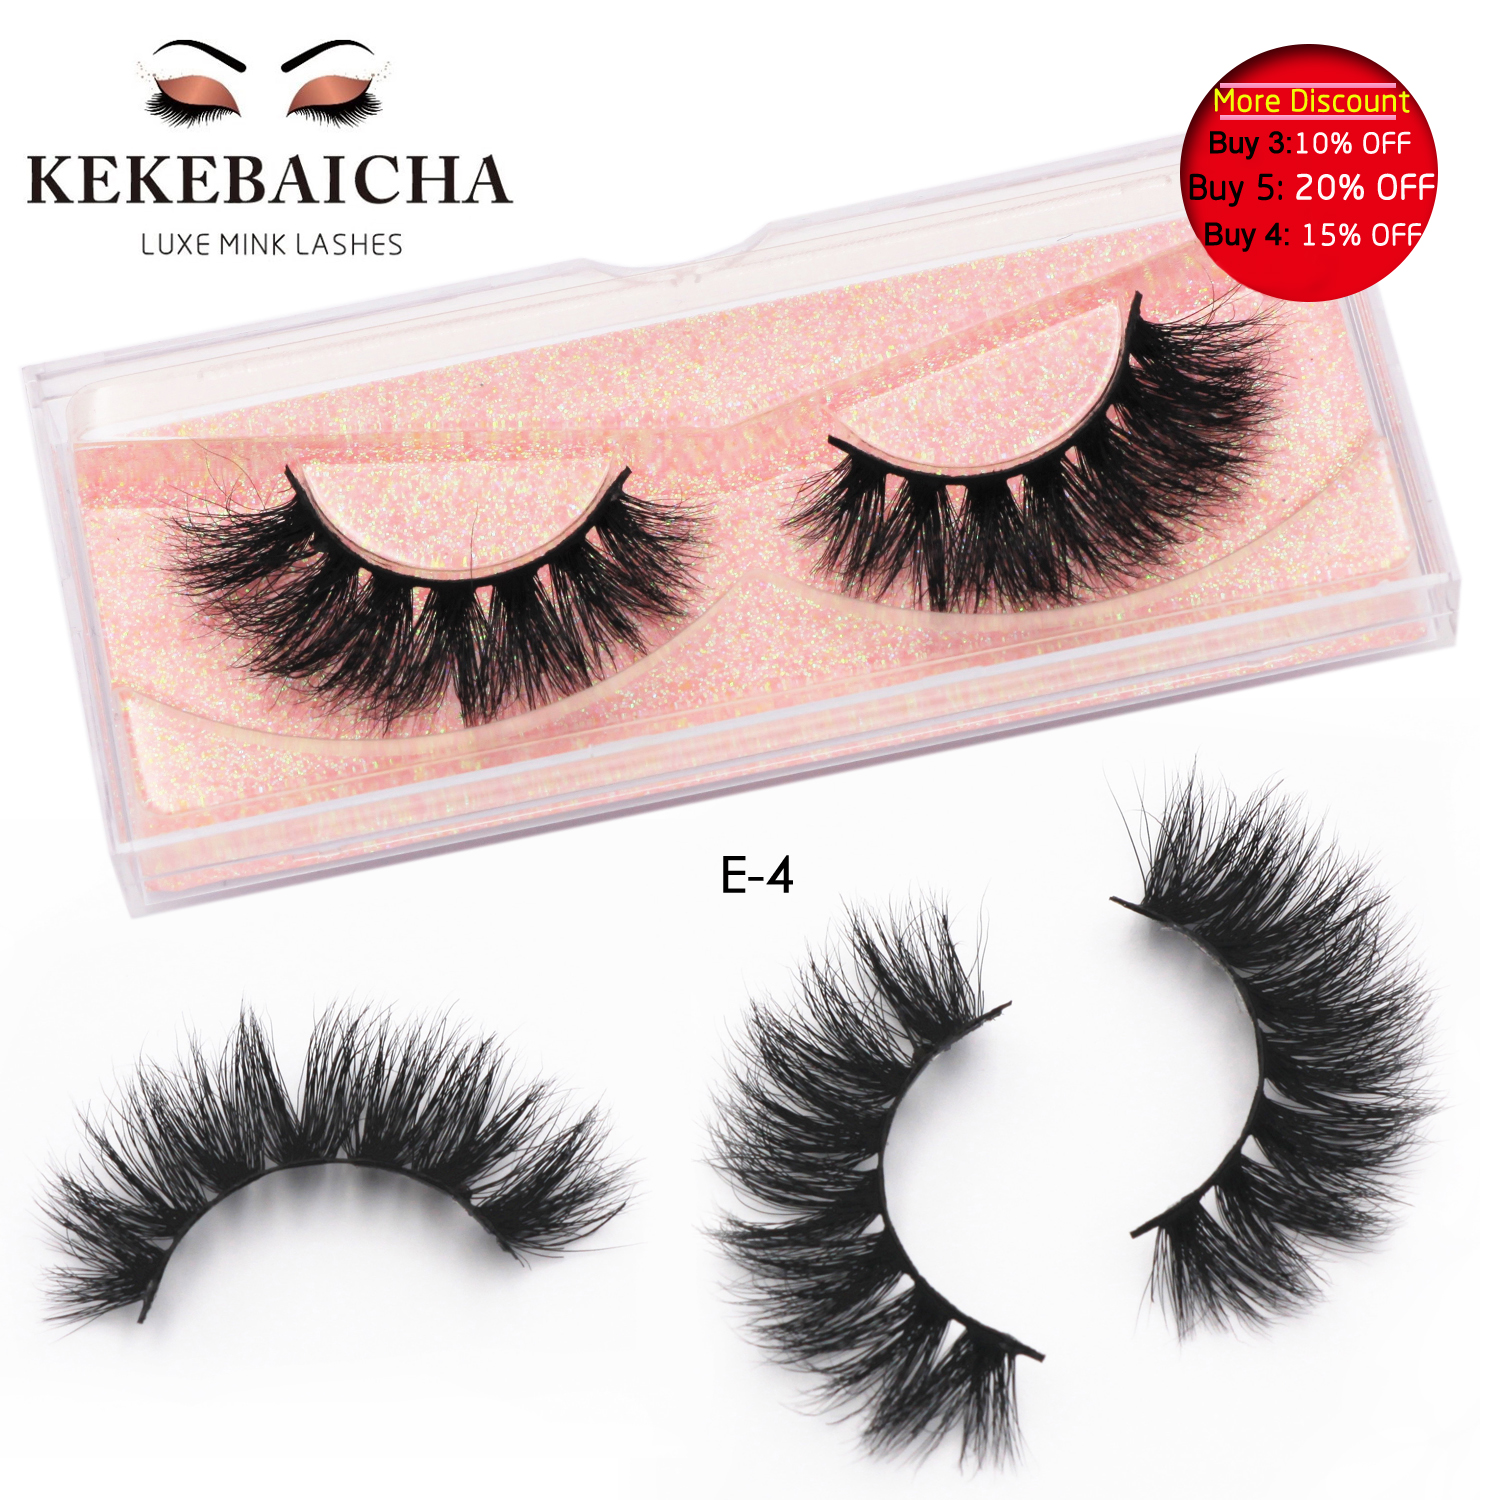 KEKEBAICHA False Eyelashes Crisscross 3D Mink Lashes Dramatic Mink Lashes Makeup Handcrafted Mink Hair Lashes Soft Eyelashes